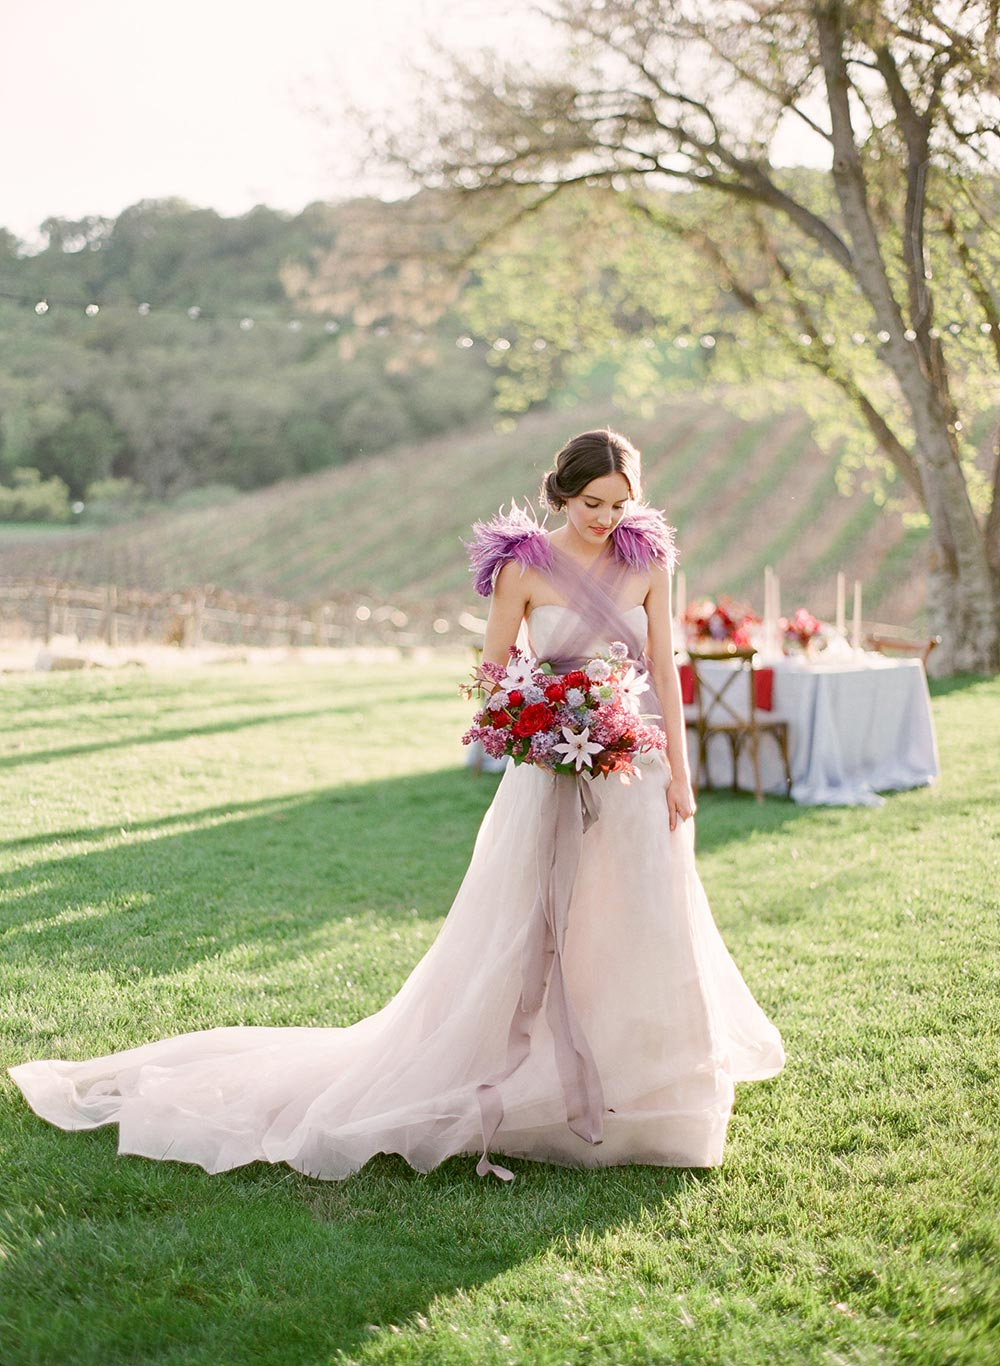 lavender wedding dress with feathers and tulle and a burgundy bridal bouquet